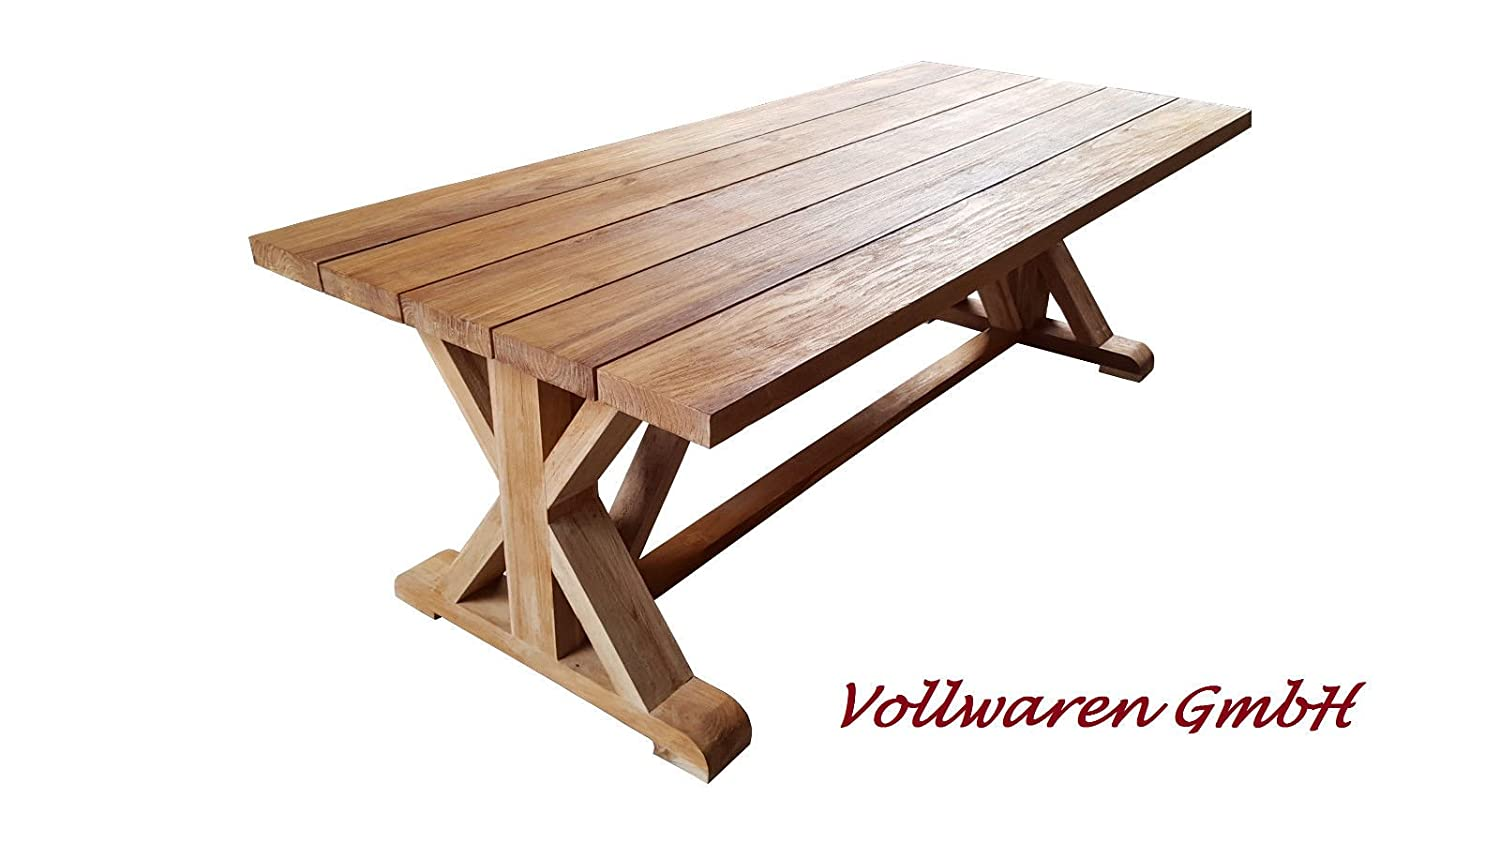 teak gartentisch emyl 220x100 teakholz antik massiv tisch tafel gartenm bel g nstig bestellen. Black Bedroom Furniture Sets. Home Design Ideas